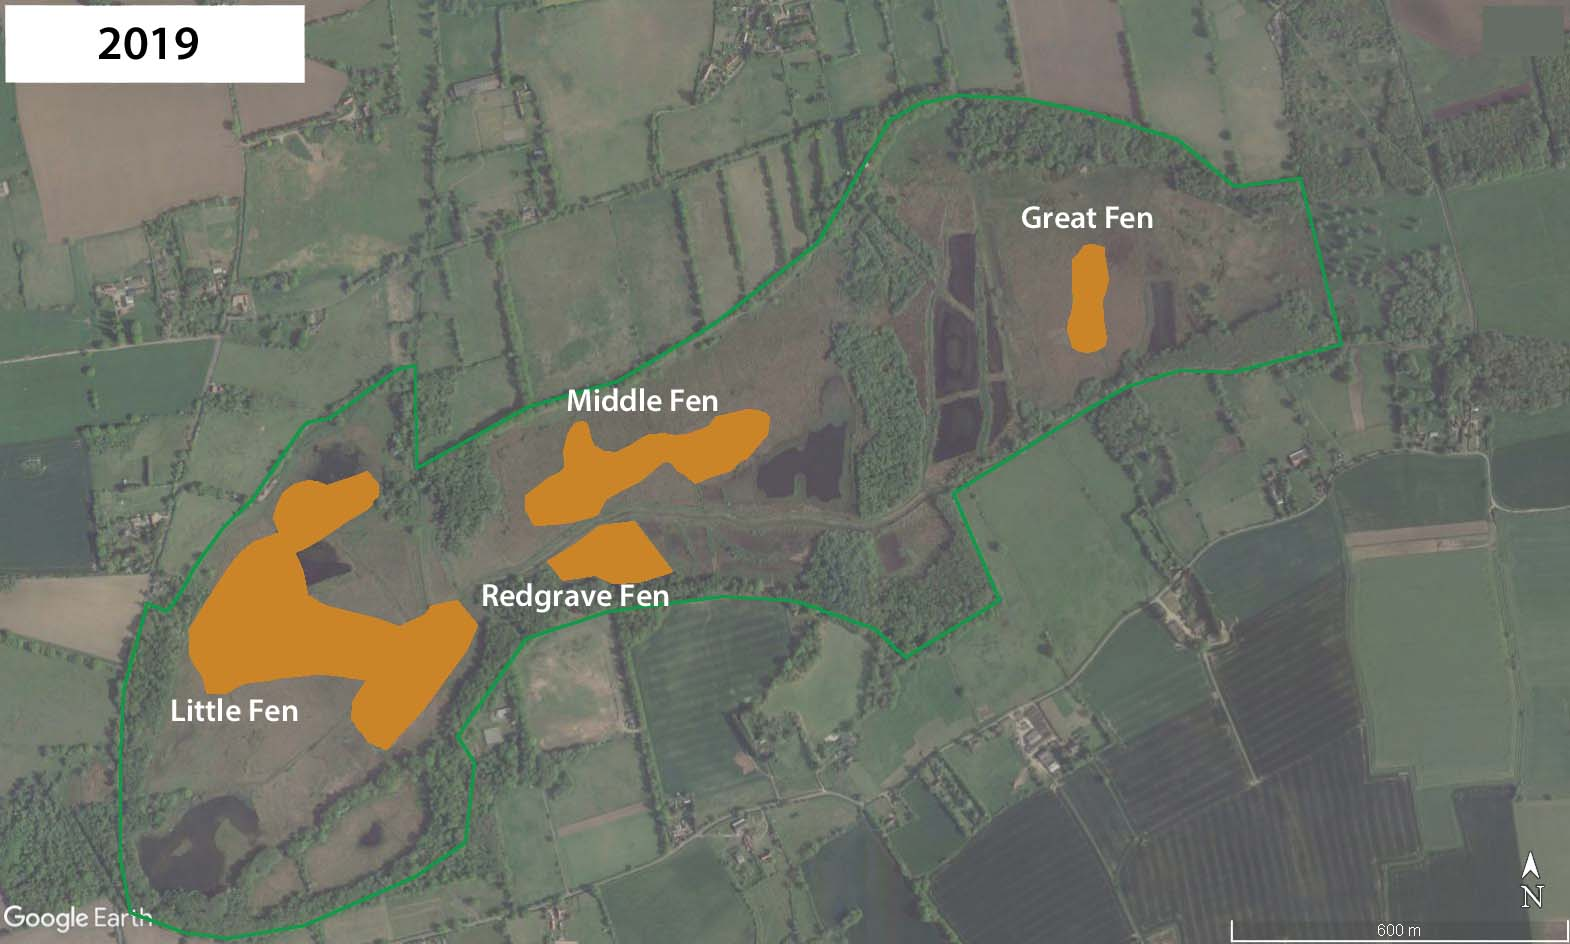 Distribution of D. plantarius at Redgrave and Lopham Fen by 2019